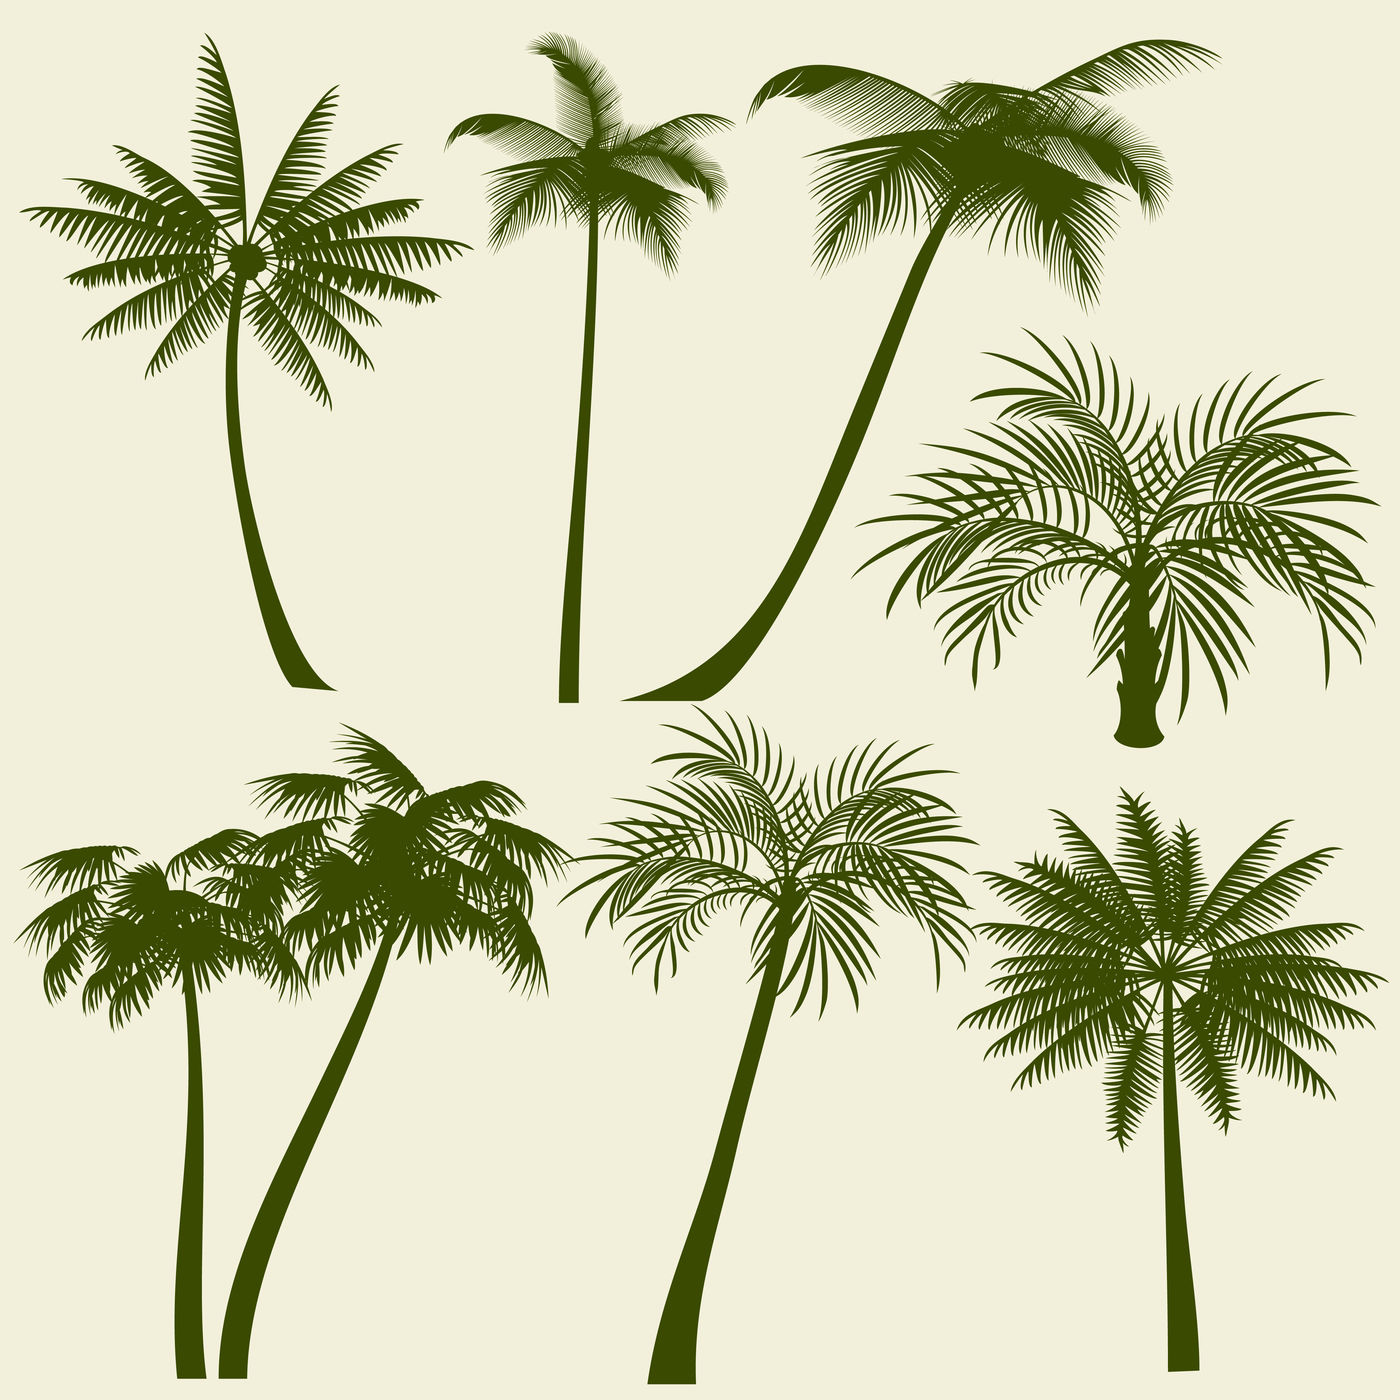 Summer Holiday Palm Tree Vector Silhouettes By Microvector